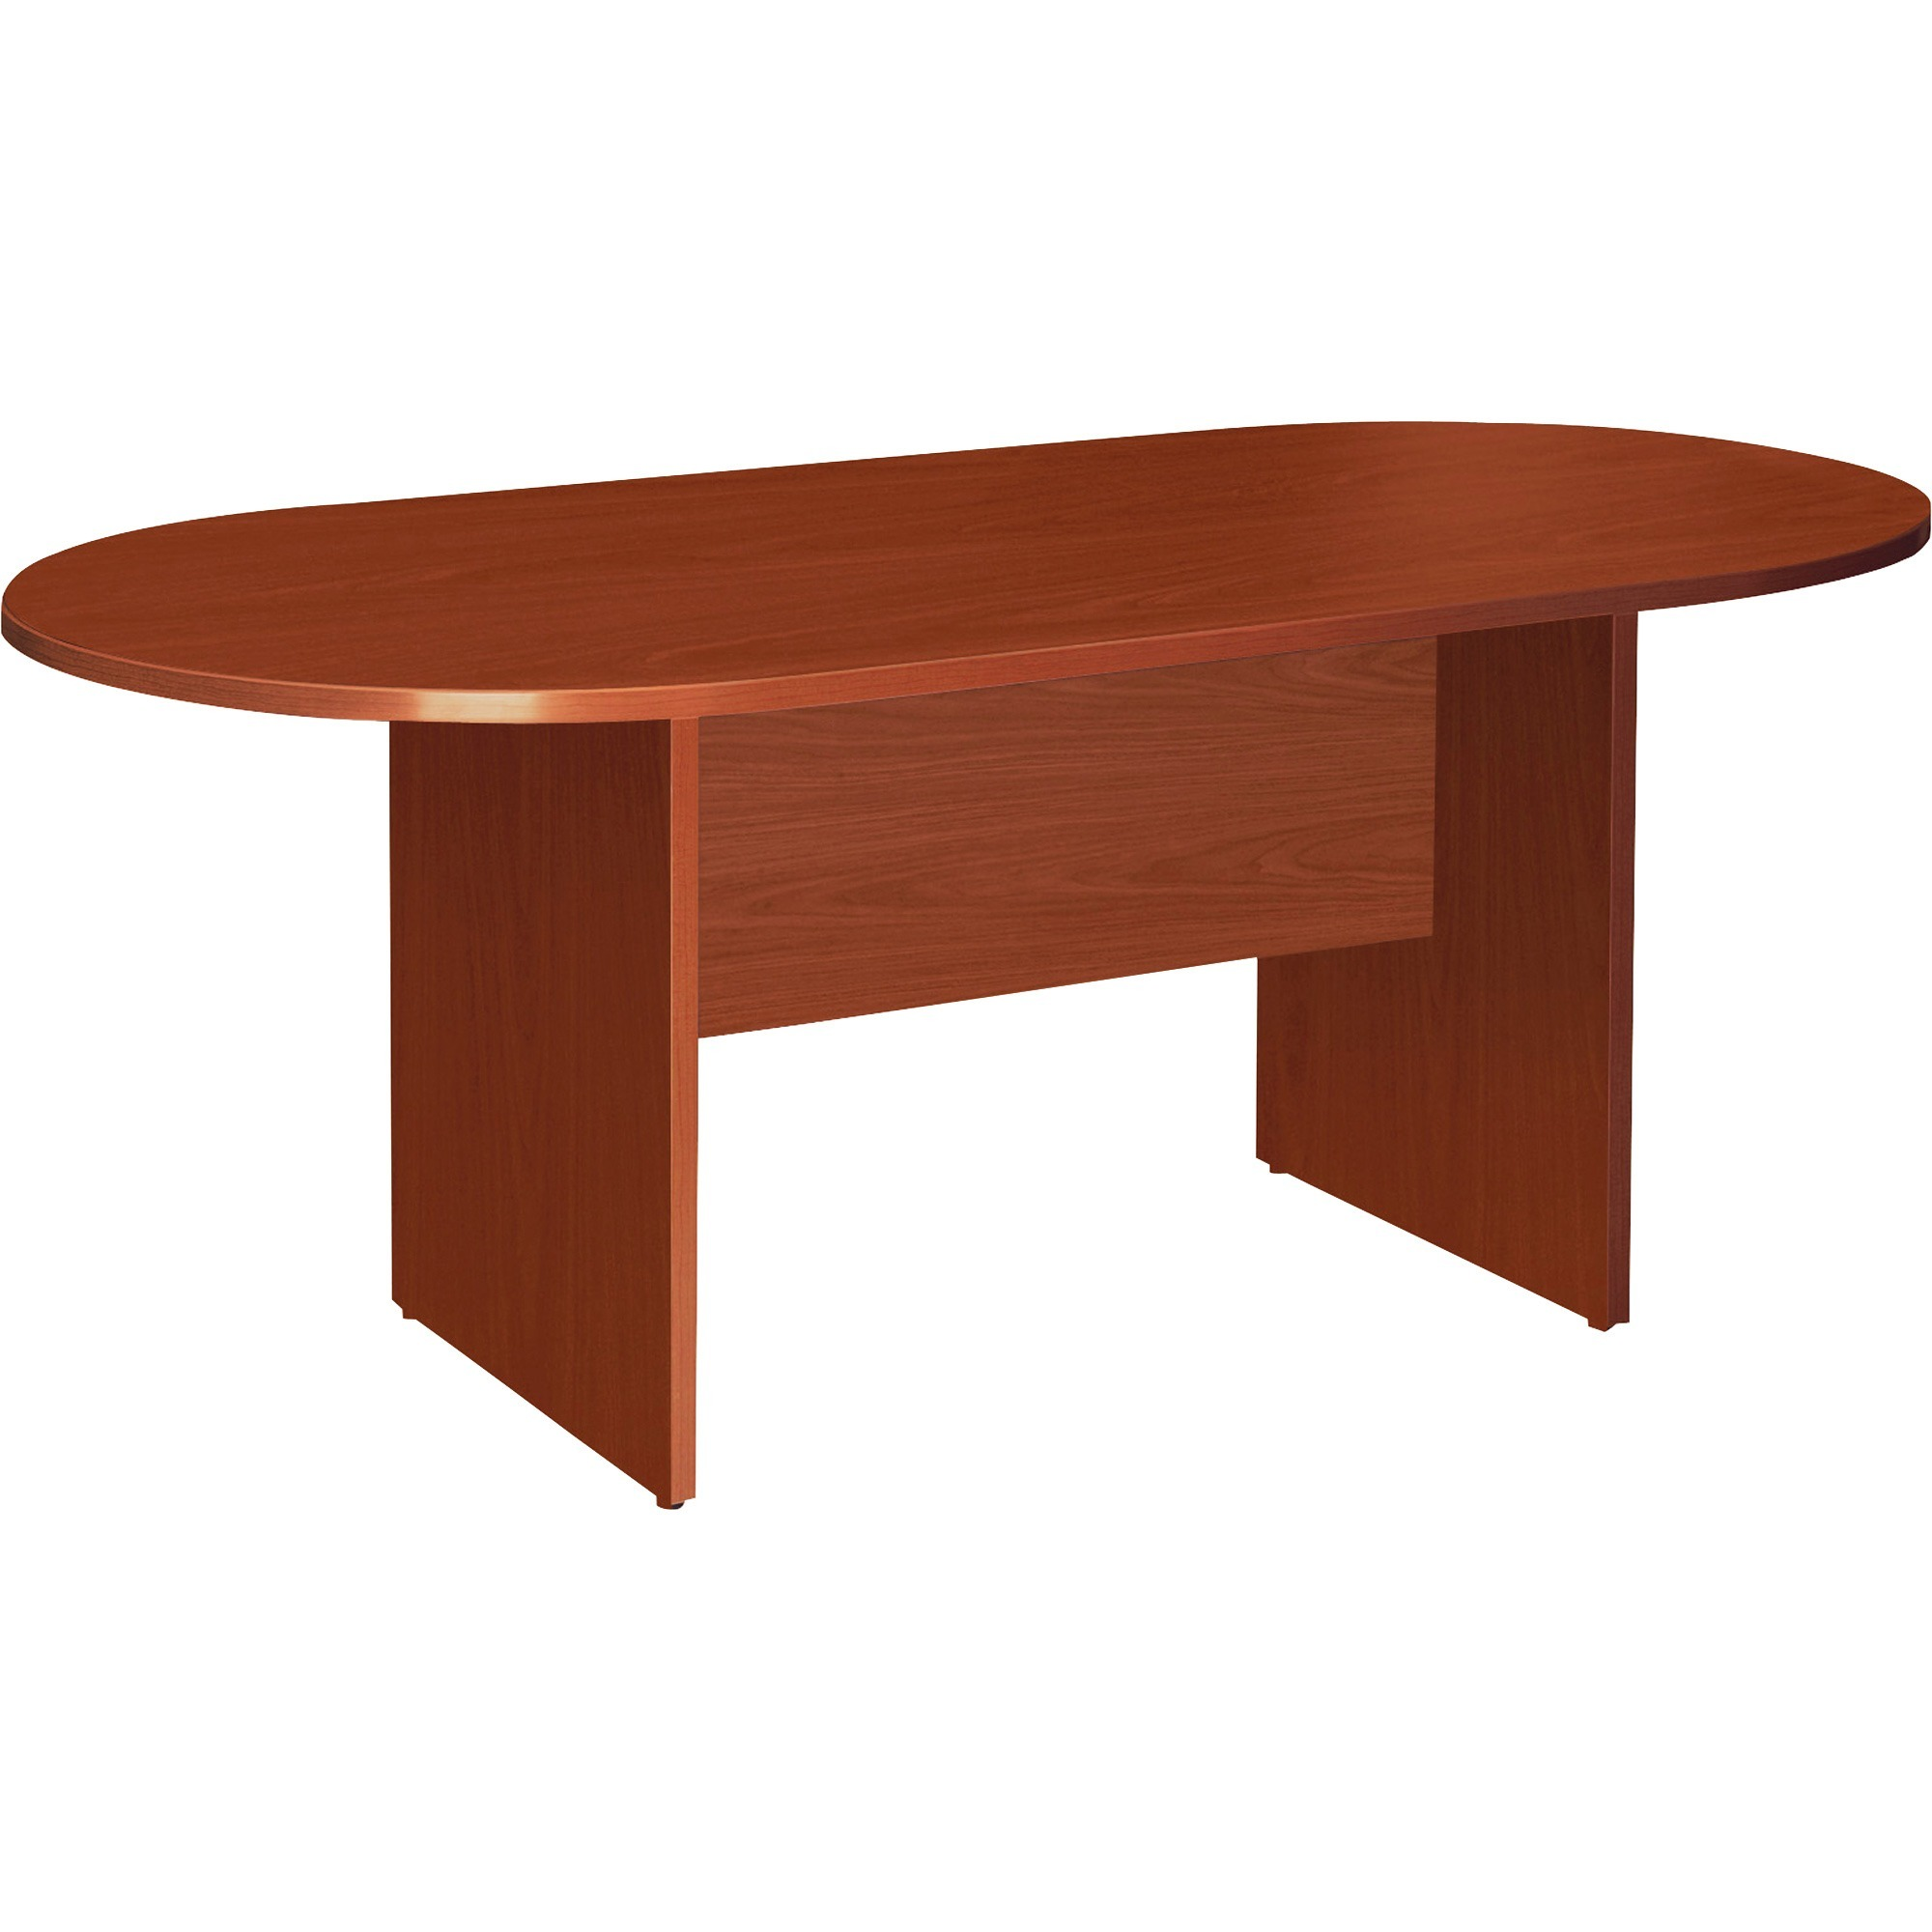 Power Surge Technologies Ltd Furniture Furniture Collections - Conference room table power